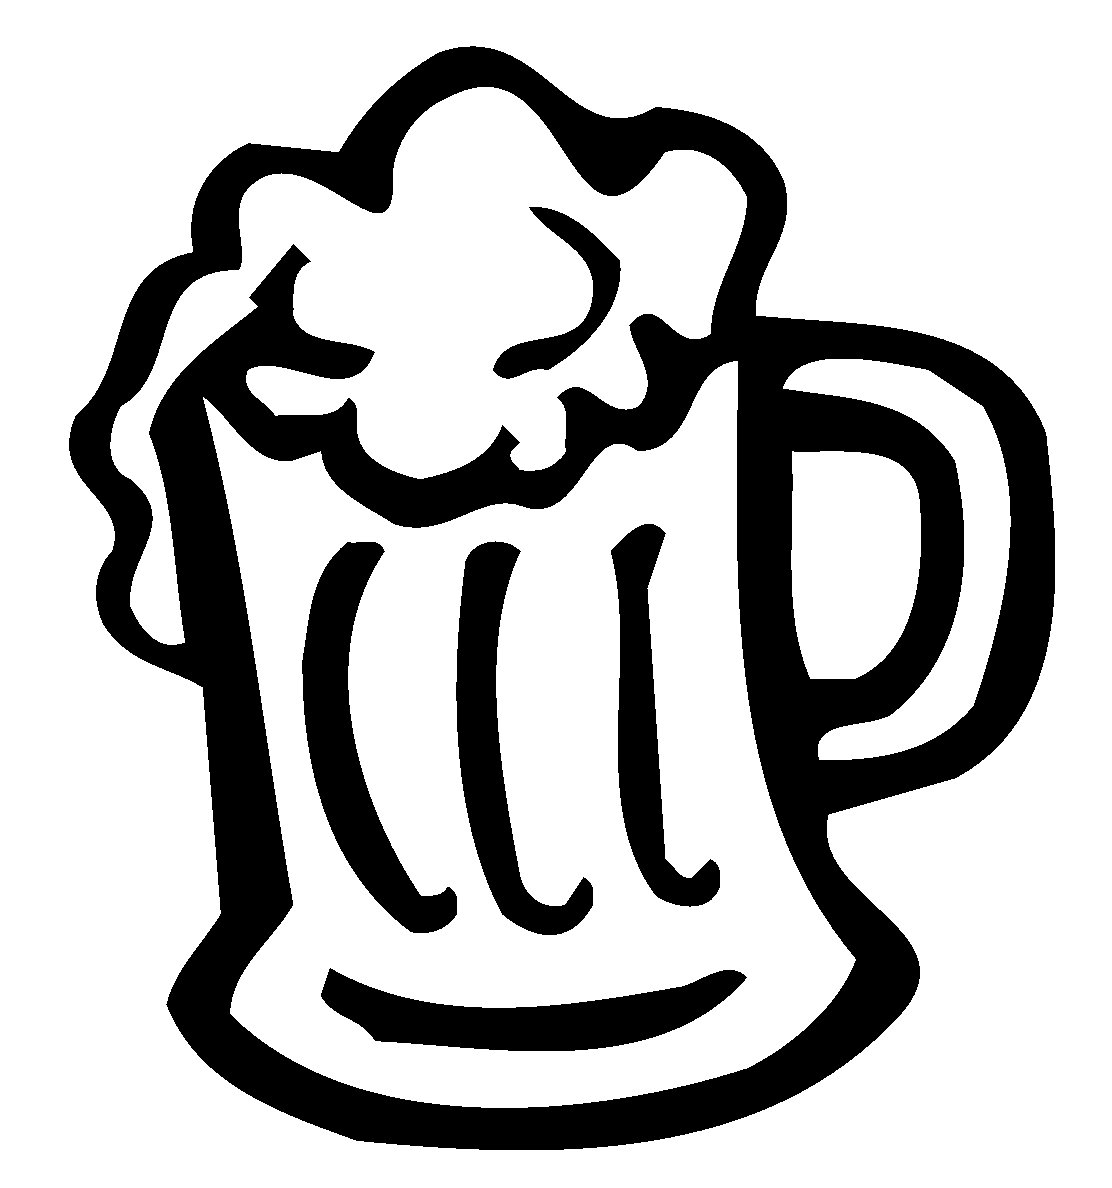 Beer mugs cheers clipart kid 2